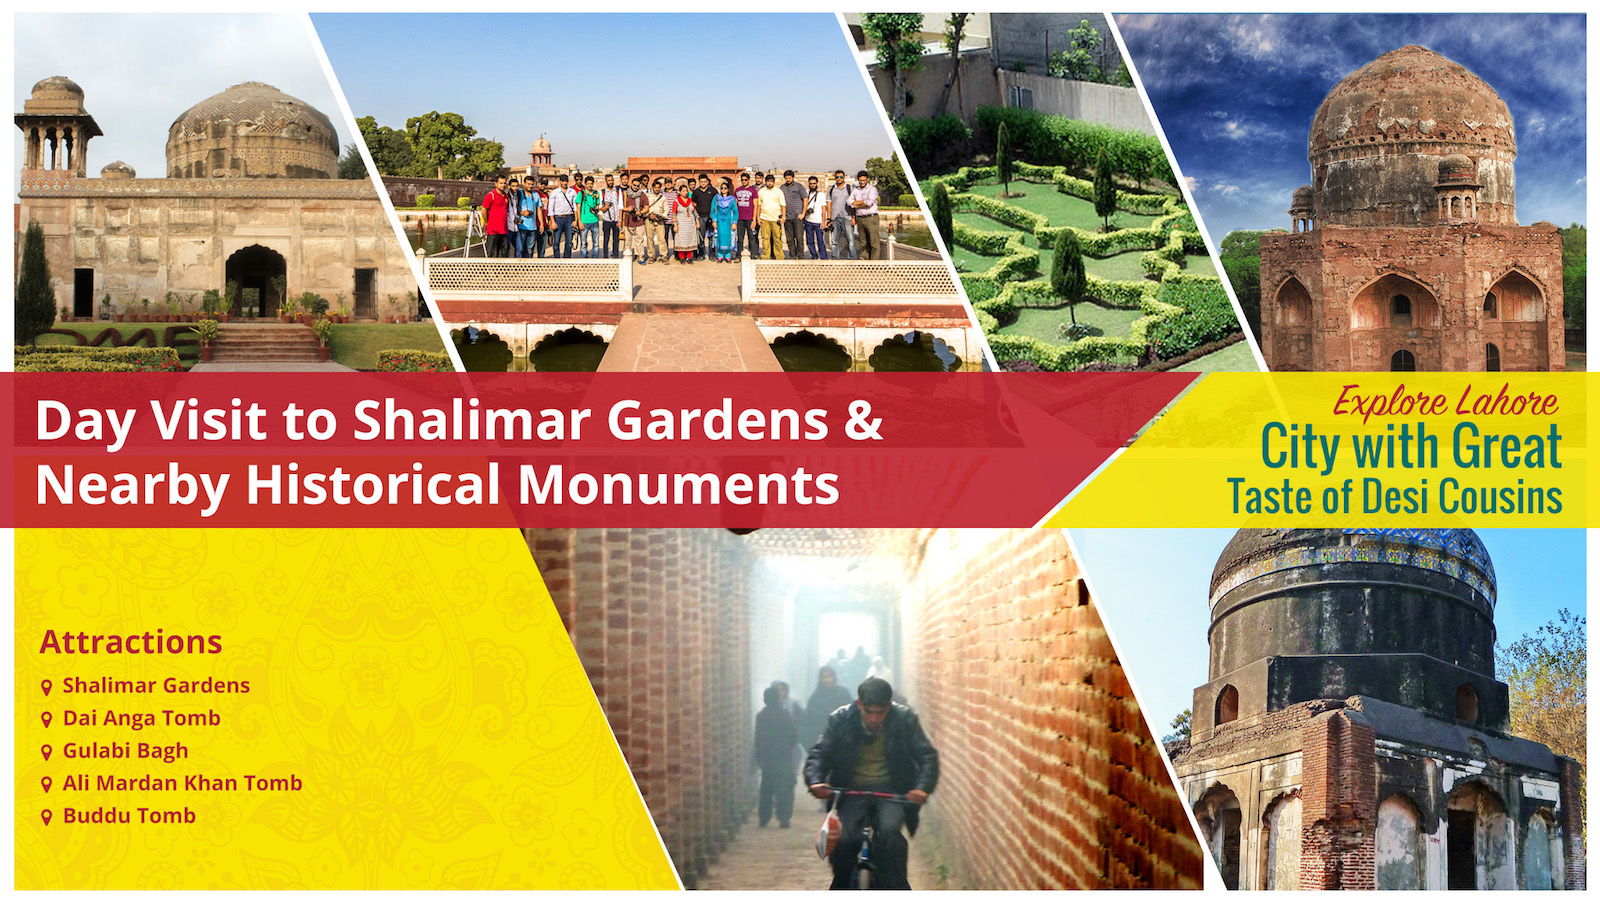 Day Visit to Shalimar Gardens & Nearby Historical Monuments